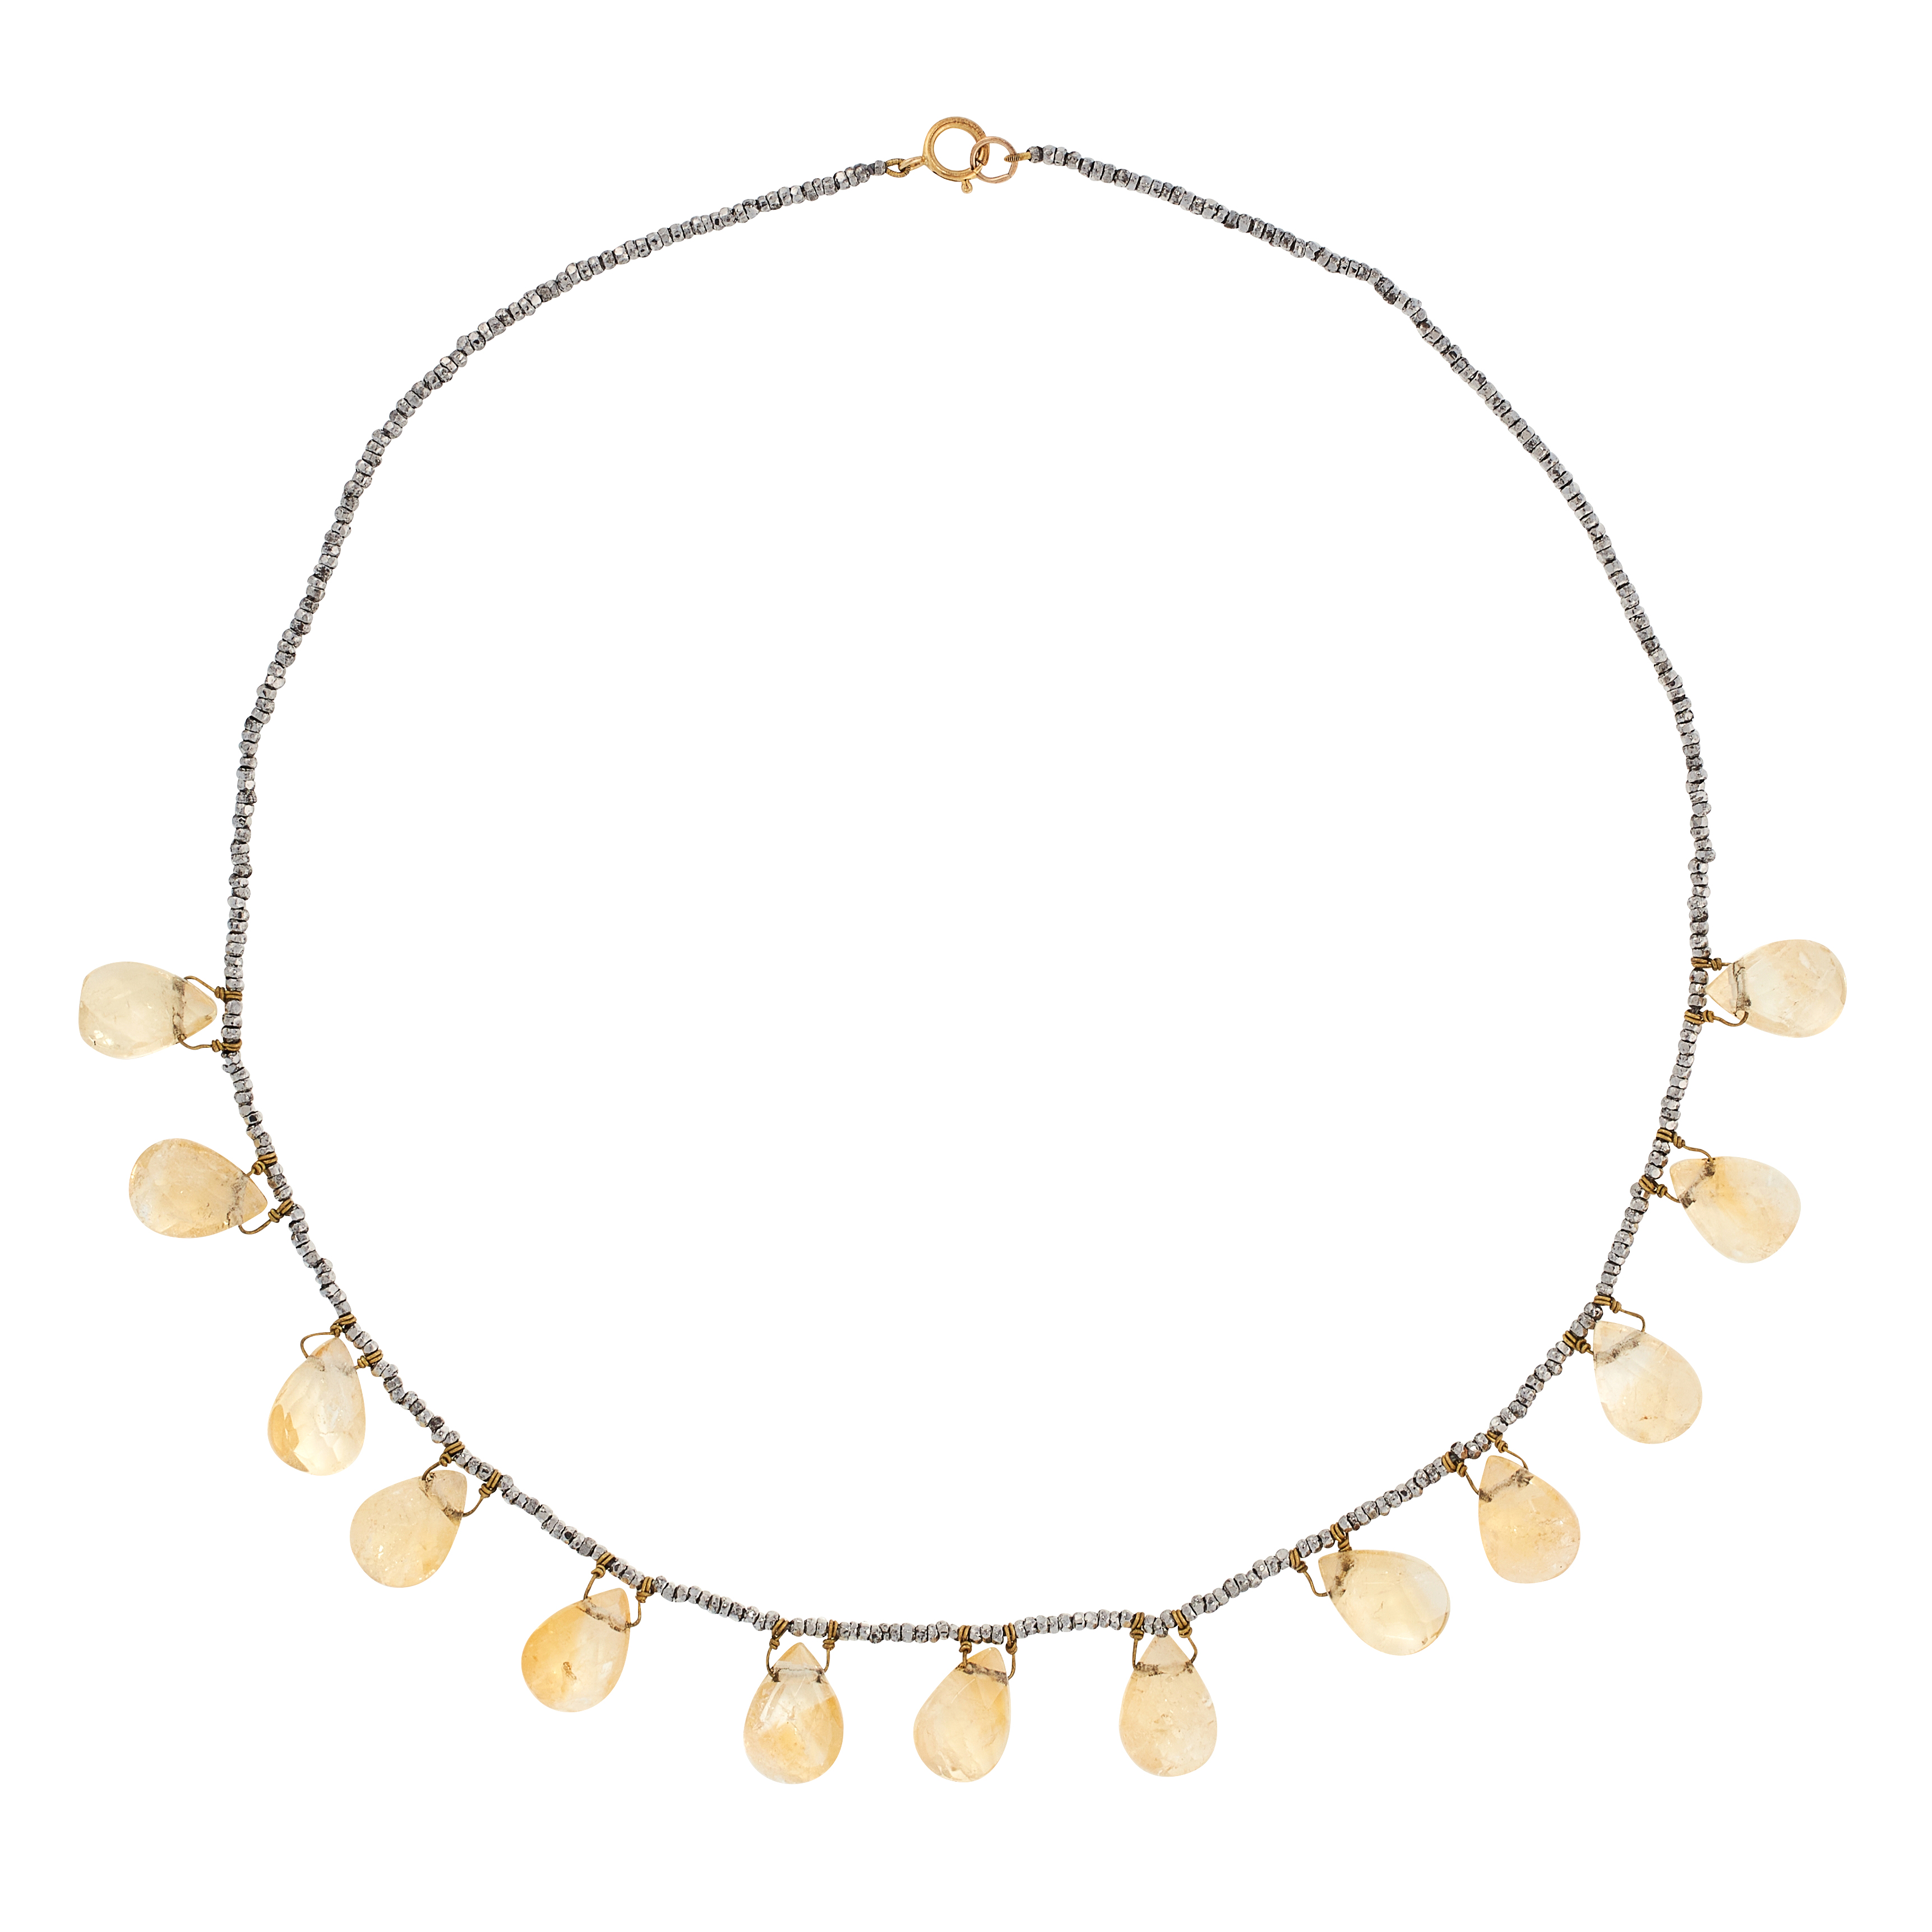 AN ANTIQUE CITRINE AND CUT STEEL NECKLACE in yellow gold, comprising a row of faceted steel beads,